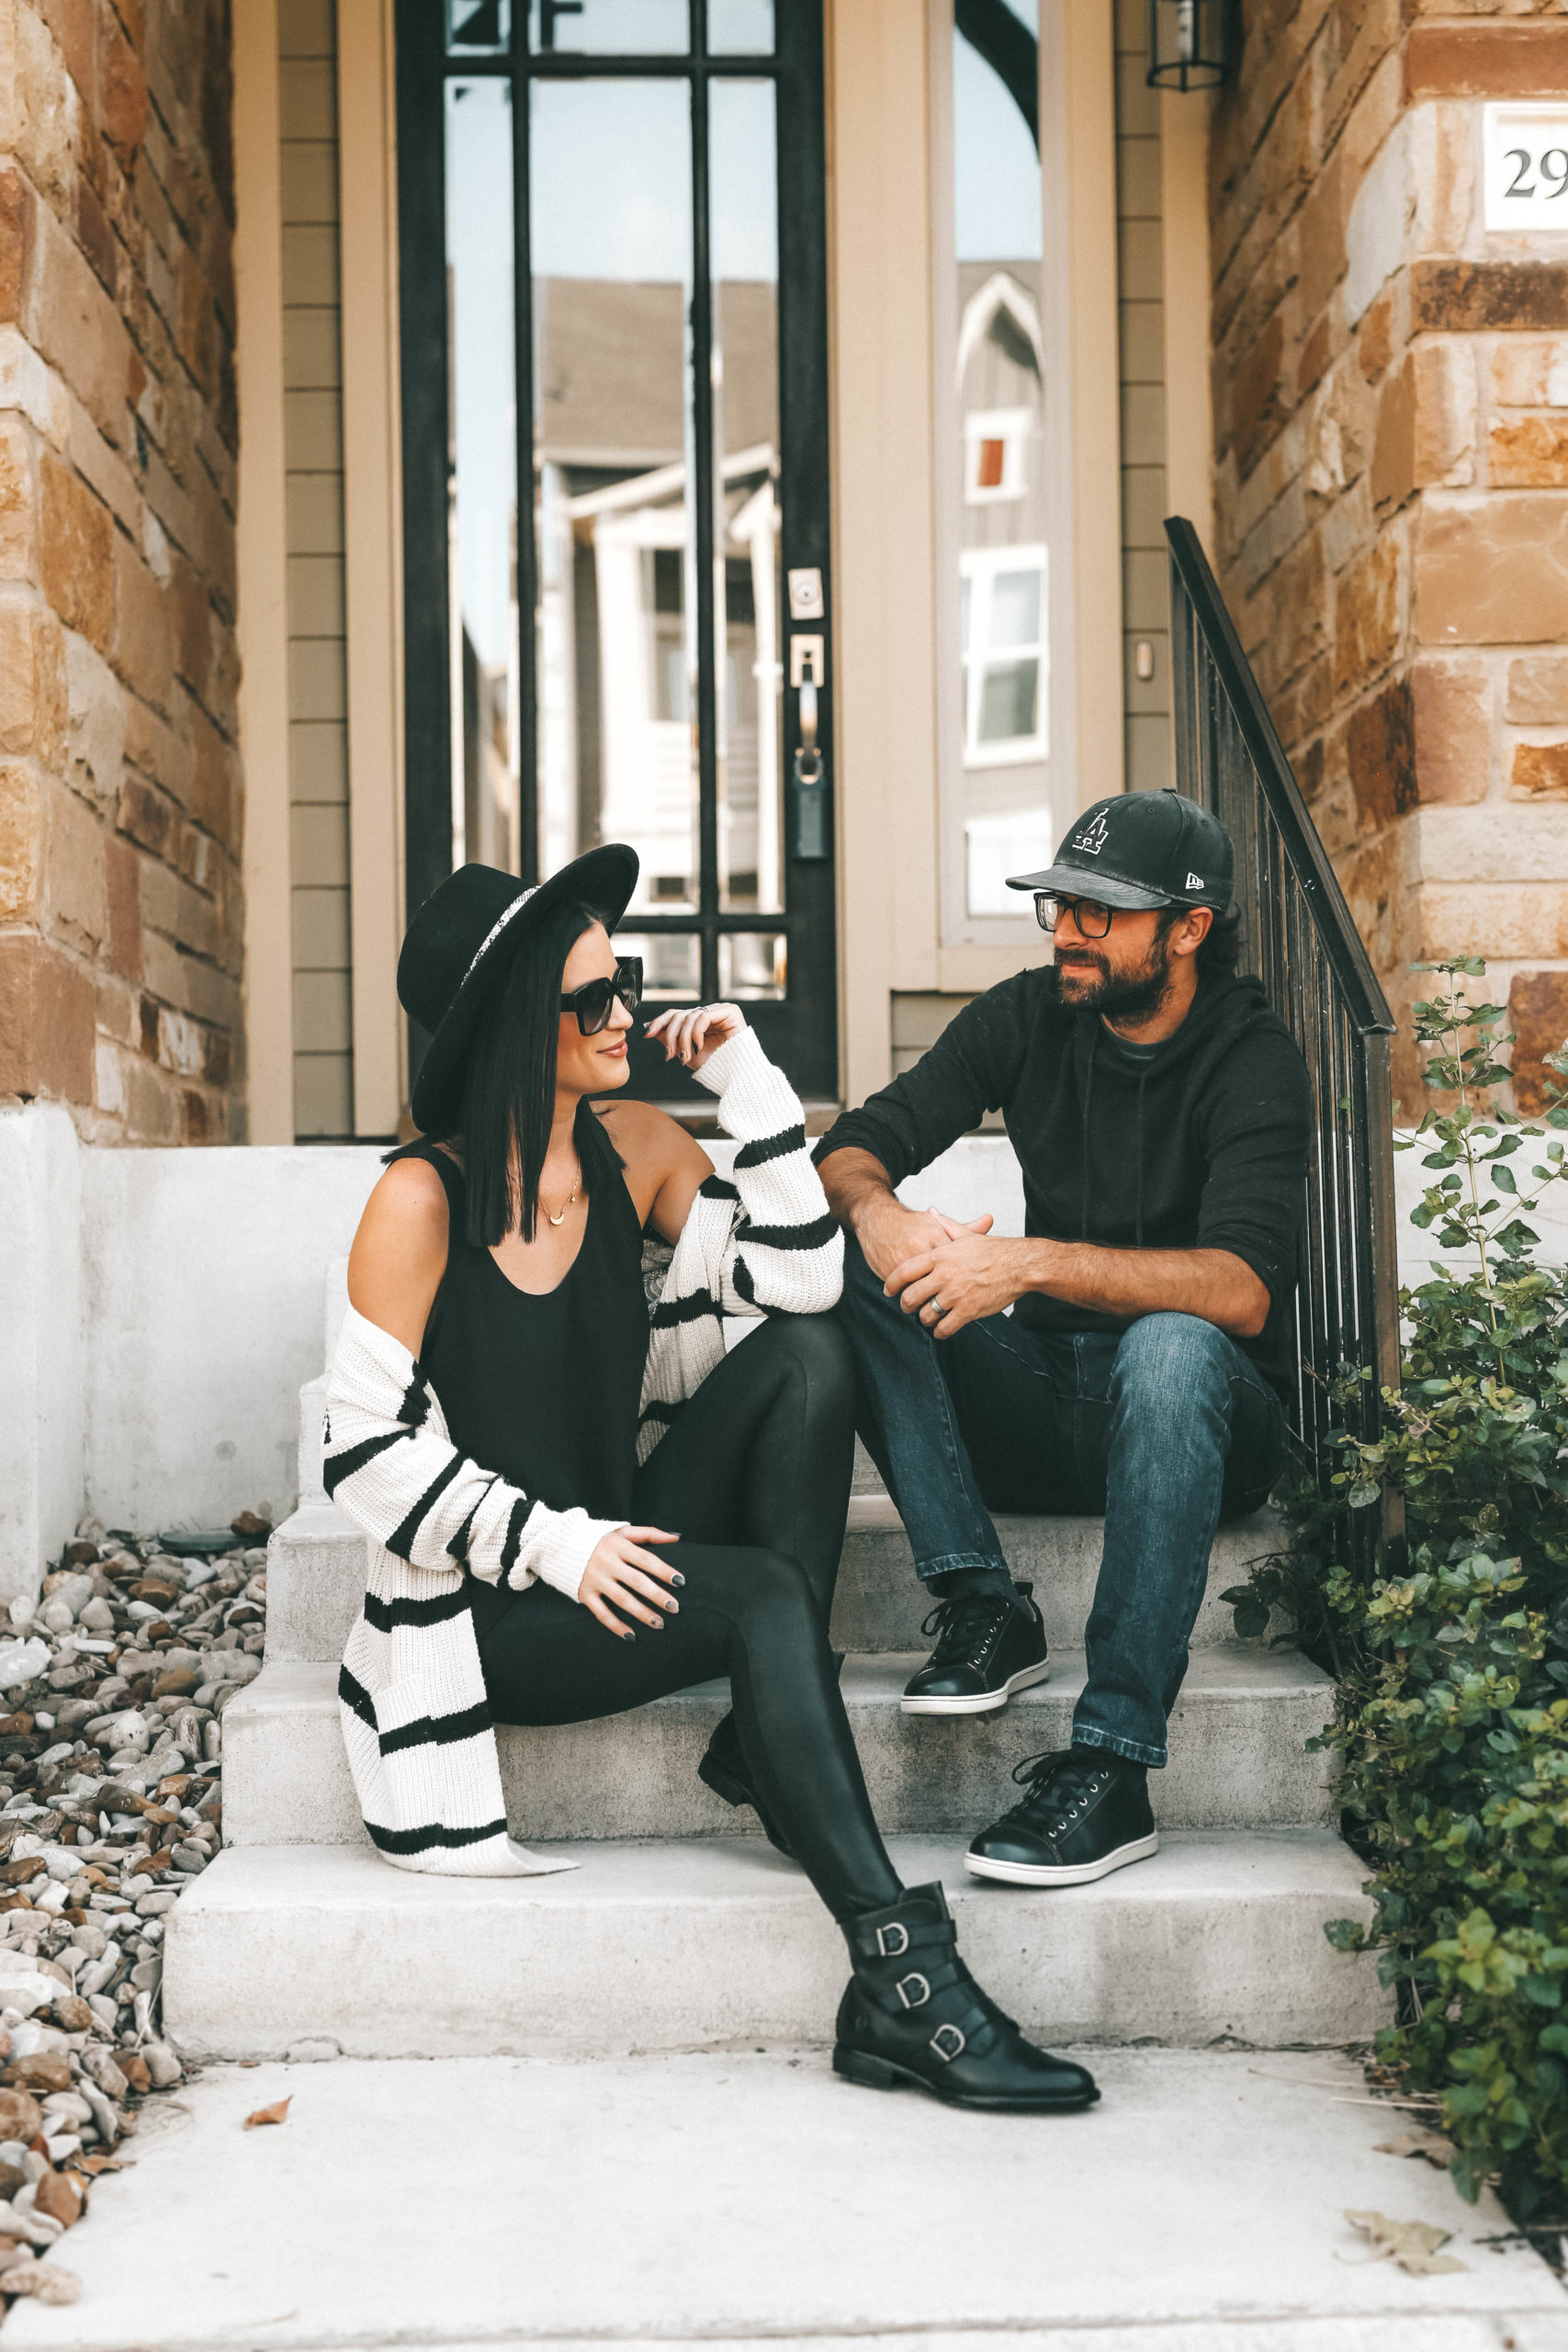 Must Have Cute Fall Shoes for Him & Her by popular Austin fashion blog, Dressed to Kill: image of a man and woman wearing Zappos Born Nivine ankle boots and Zappos Born Allegheny sneakers.